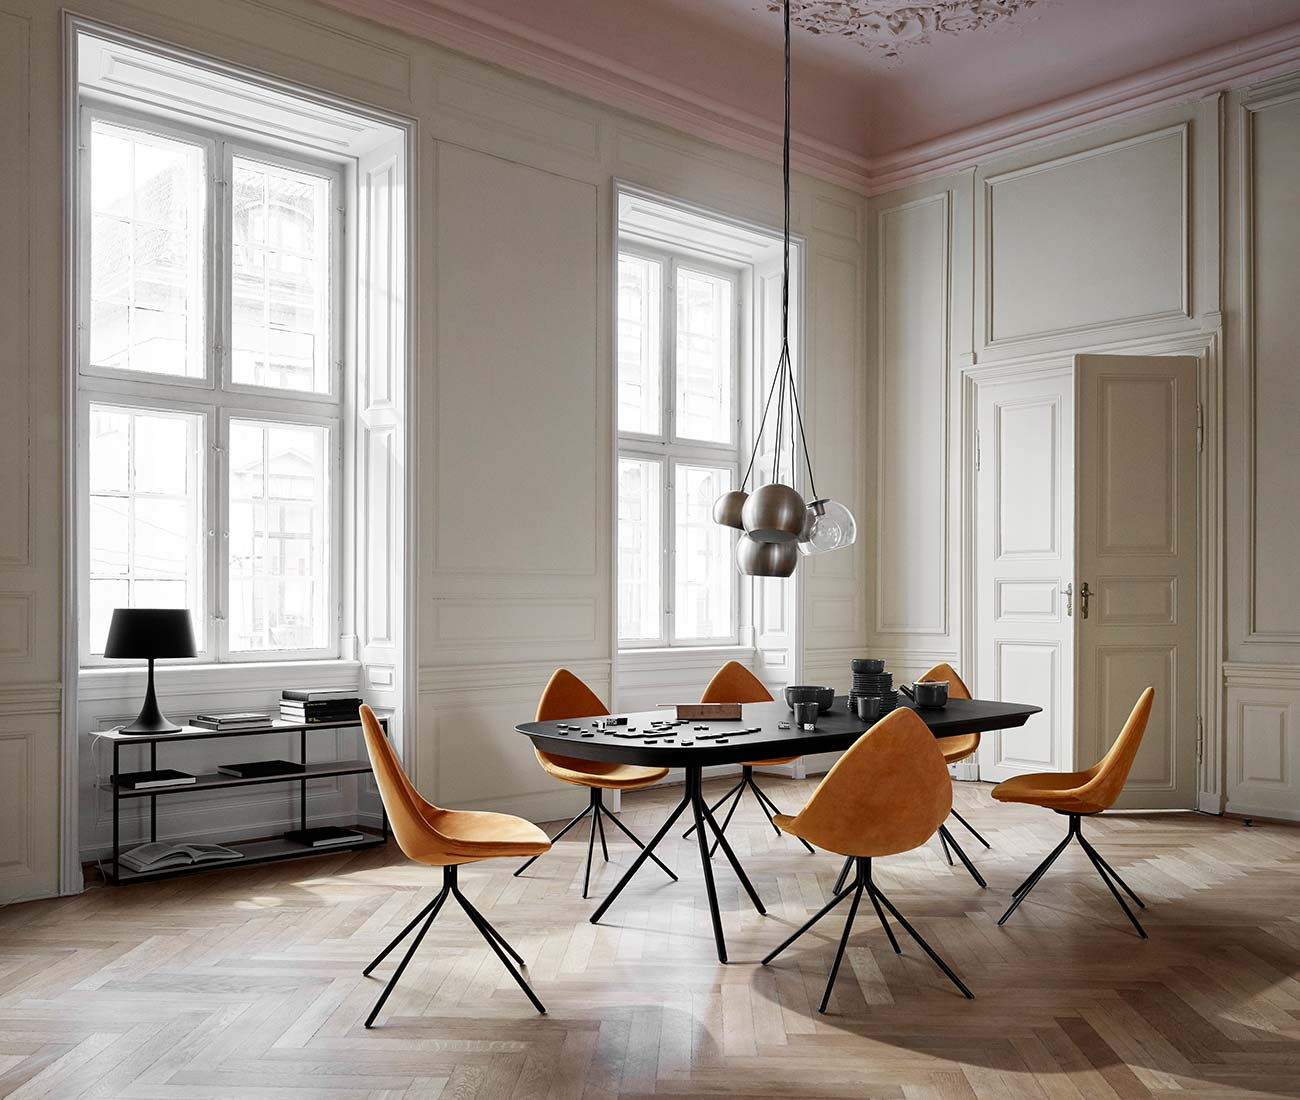 Ikea Grenoble Catalogue Contemporary Danish Furniture Discover Boconcept